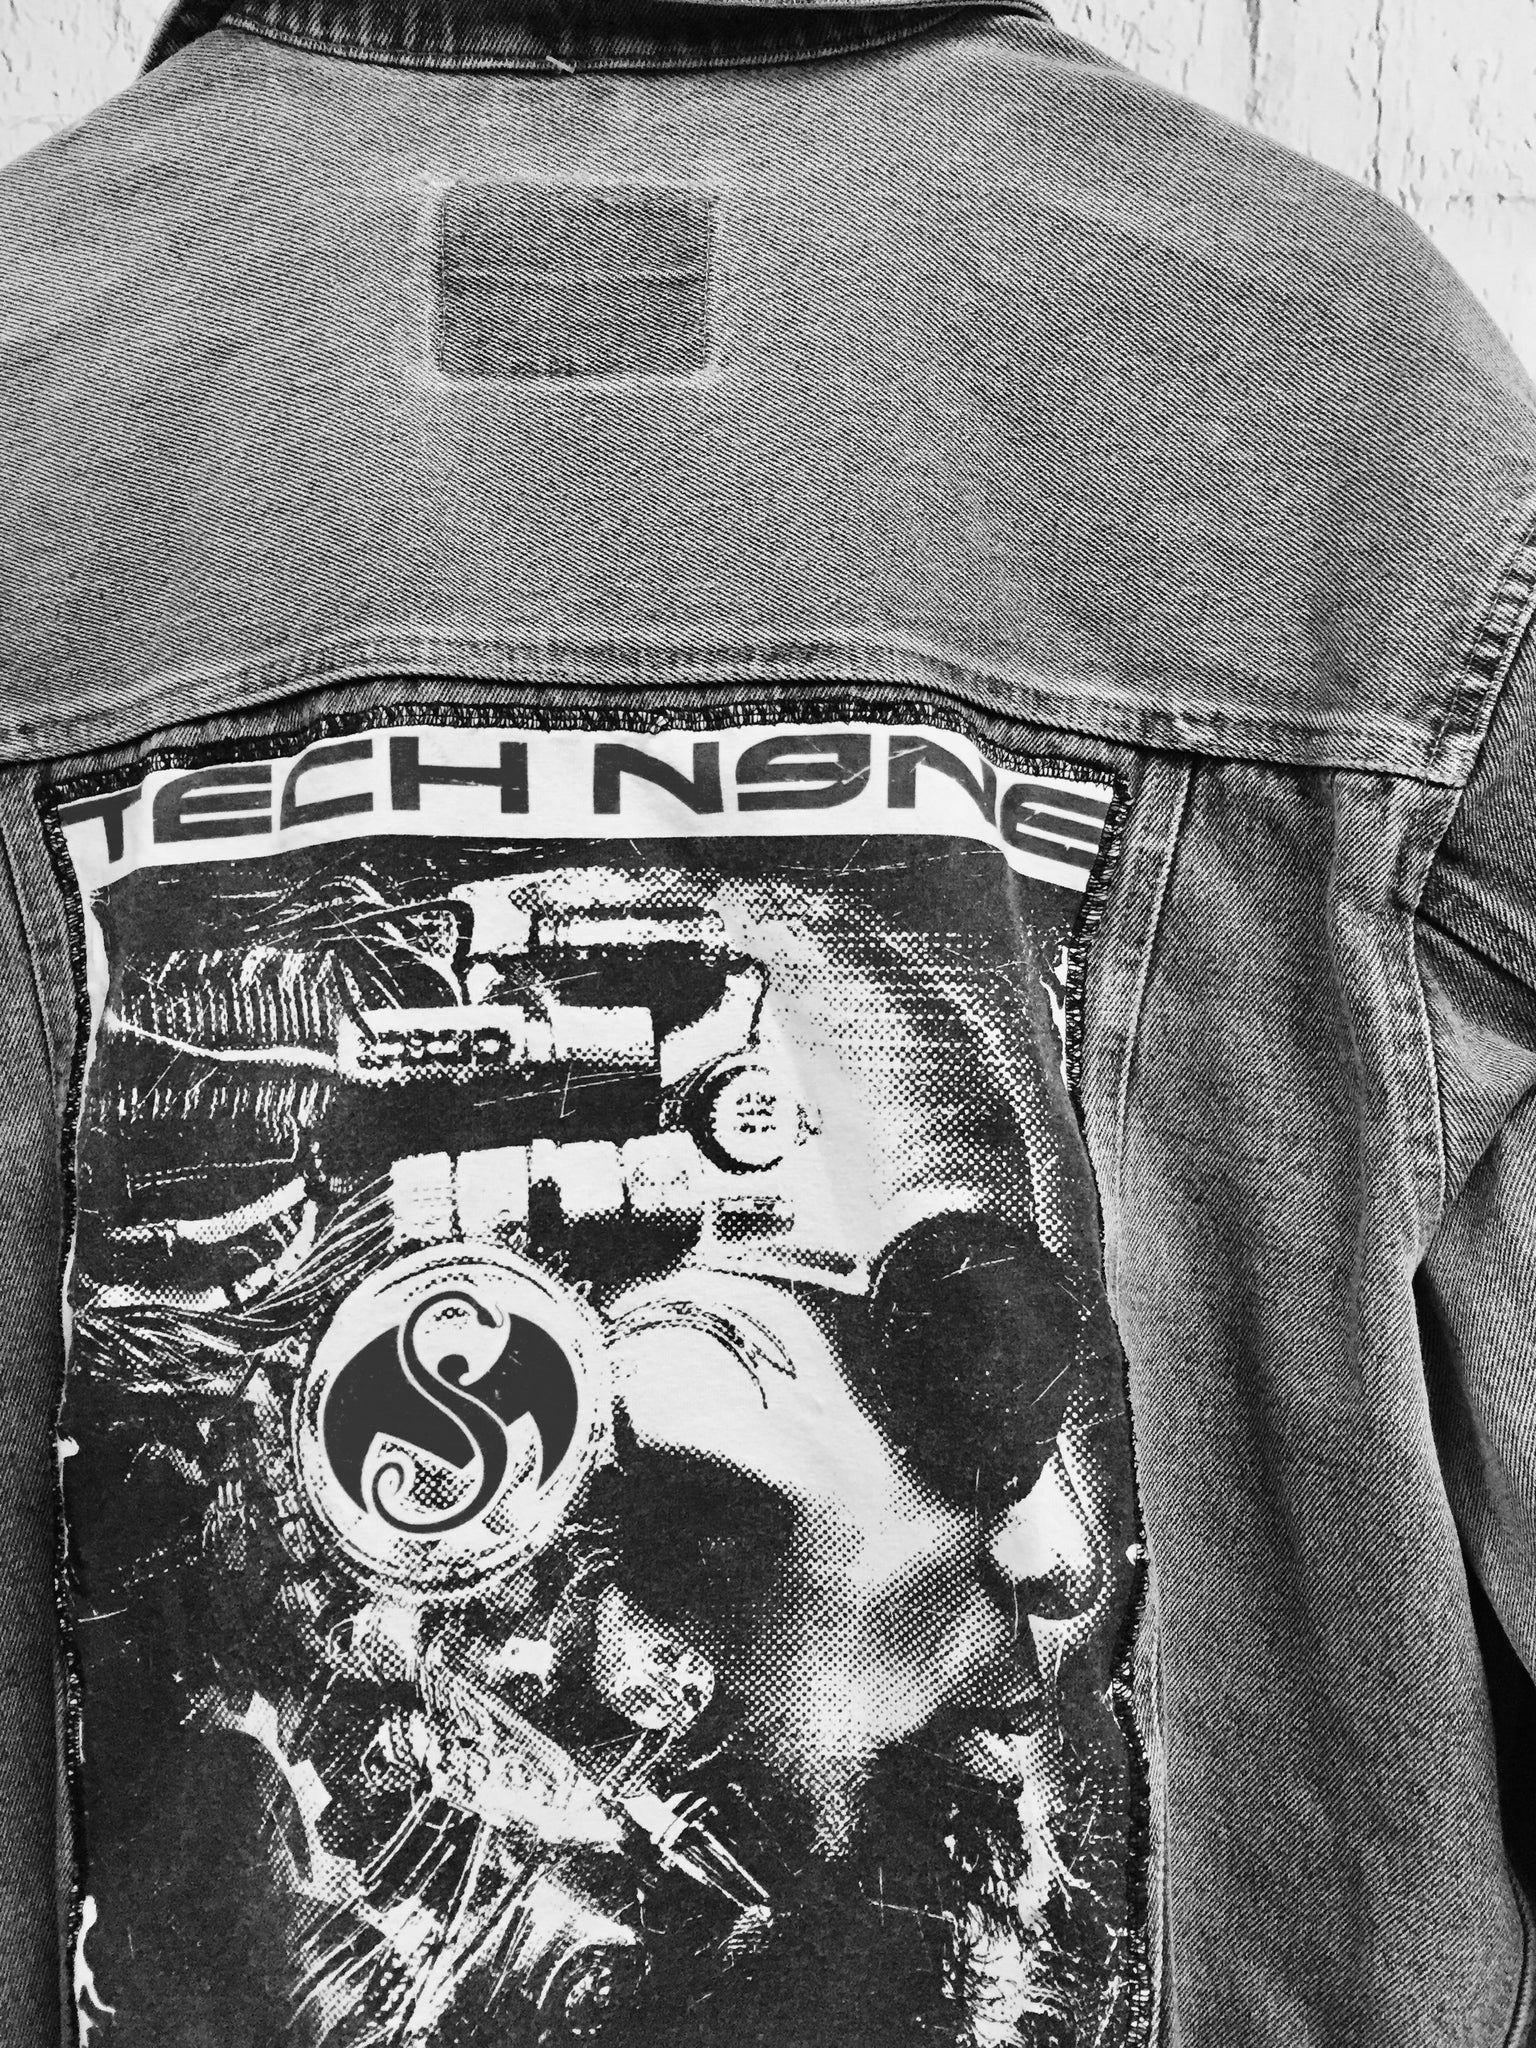 TECH N9ne - Denim Jacket